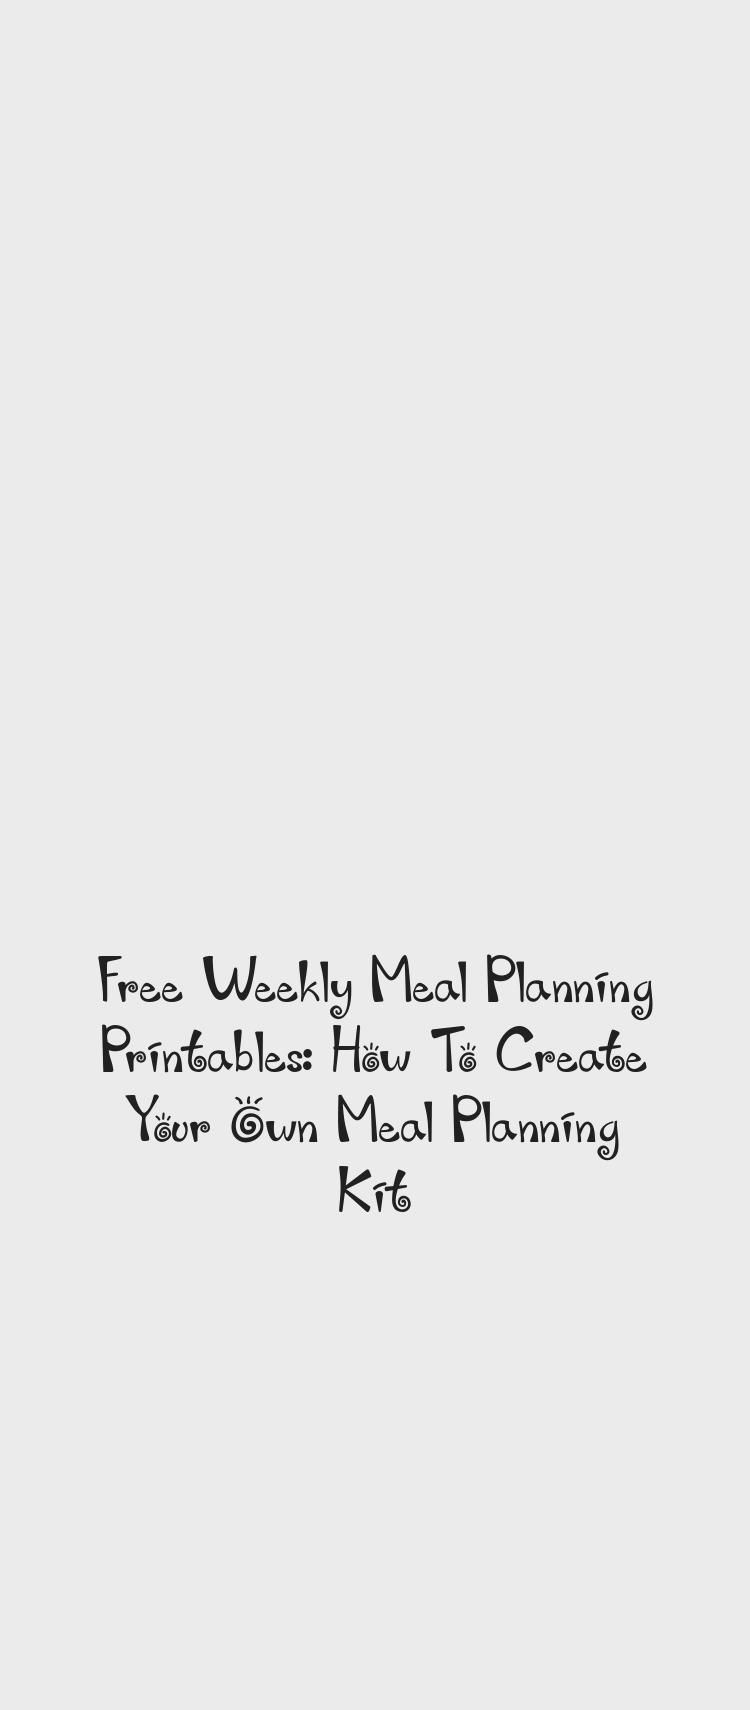 Free Weekly Meal Planning Printables How To Create Your Own Meal Planning Kit